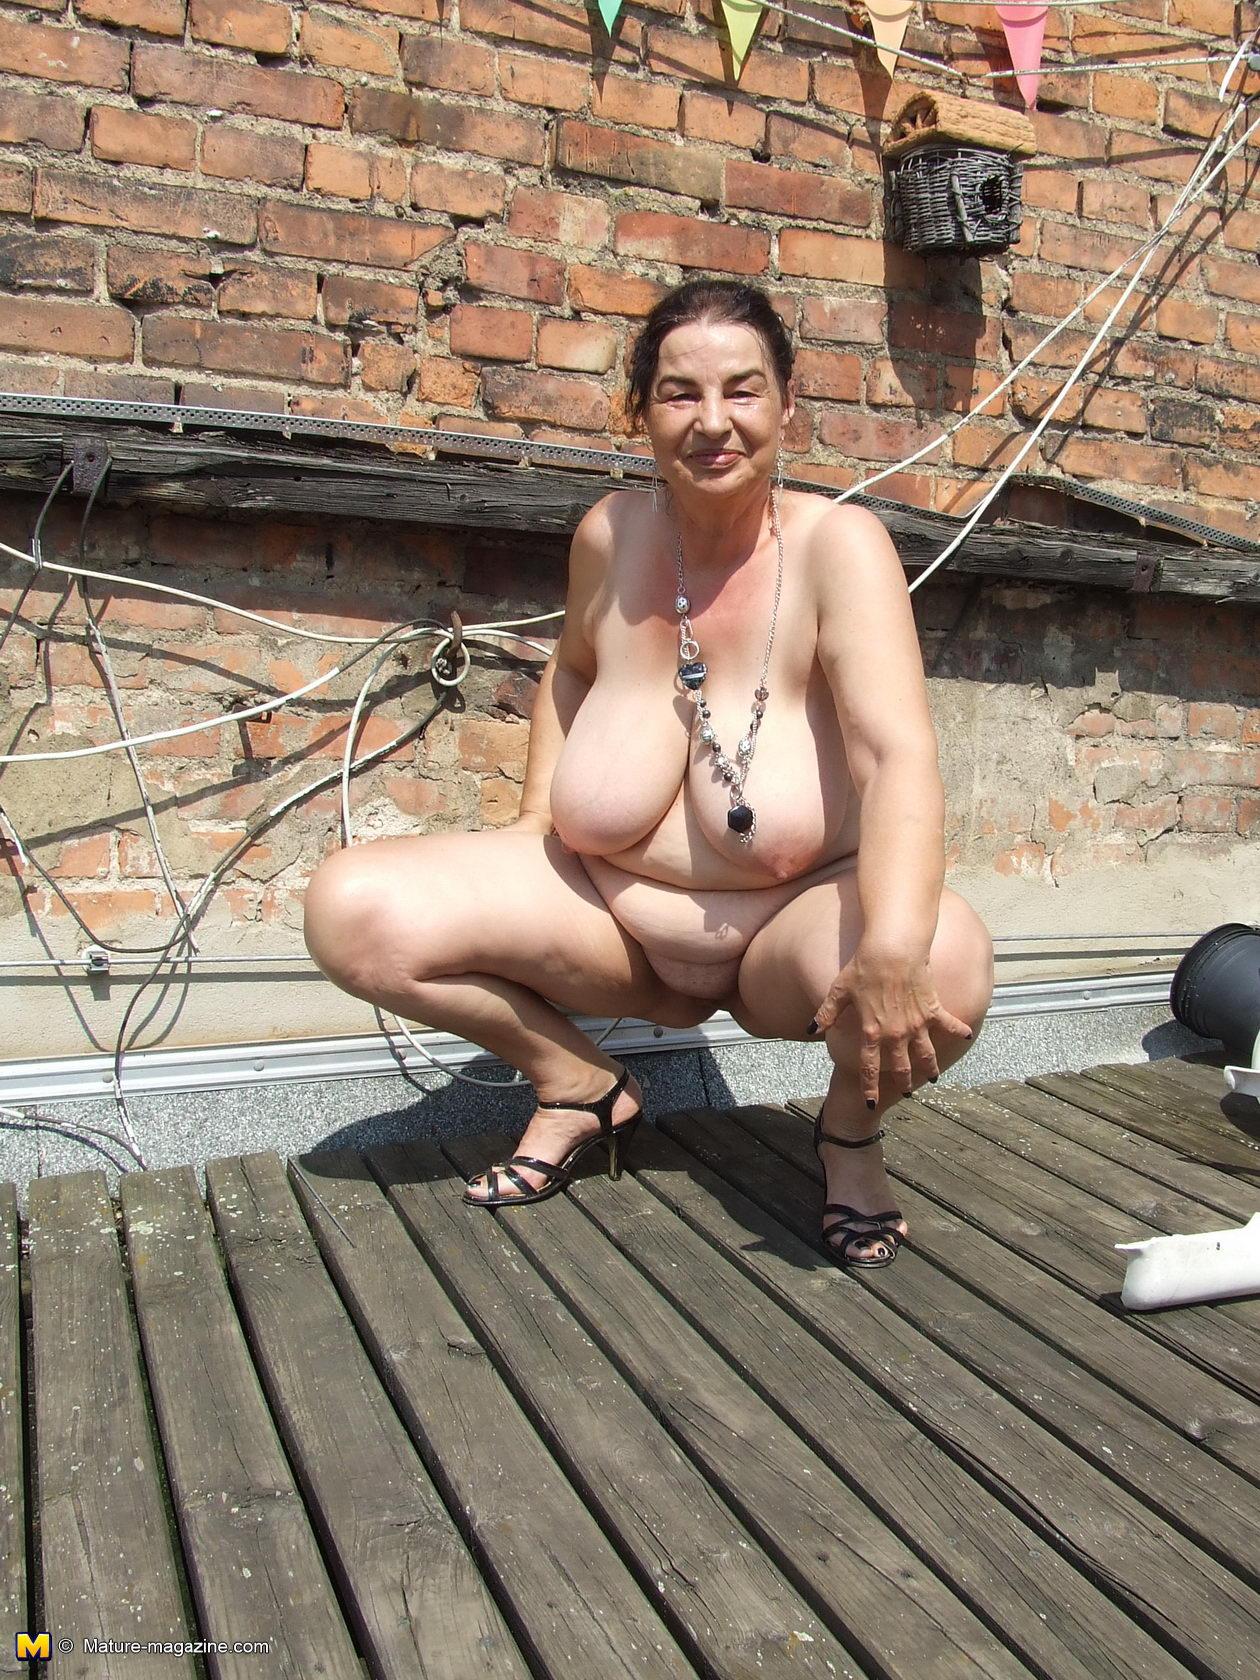 Assured, what Grandma outdoors slut seems brilliant